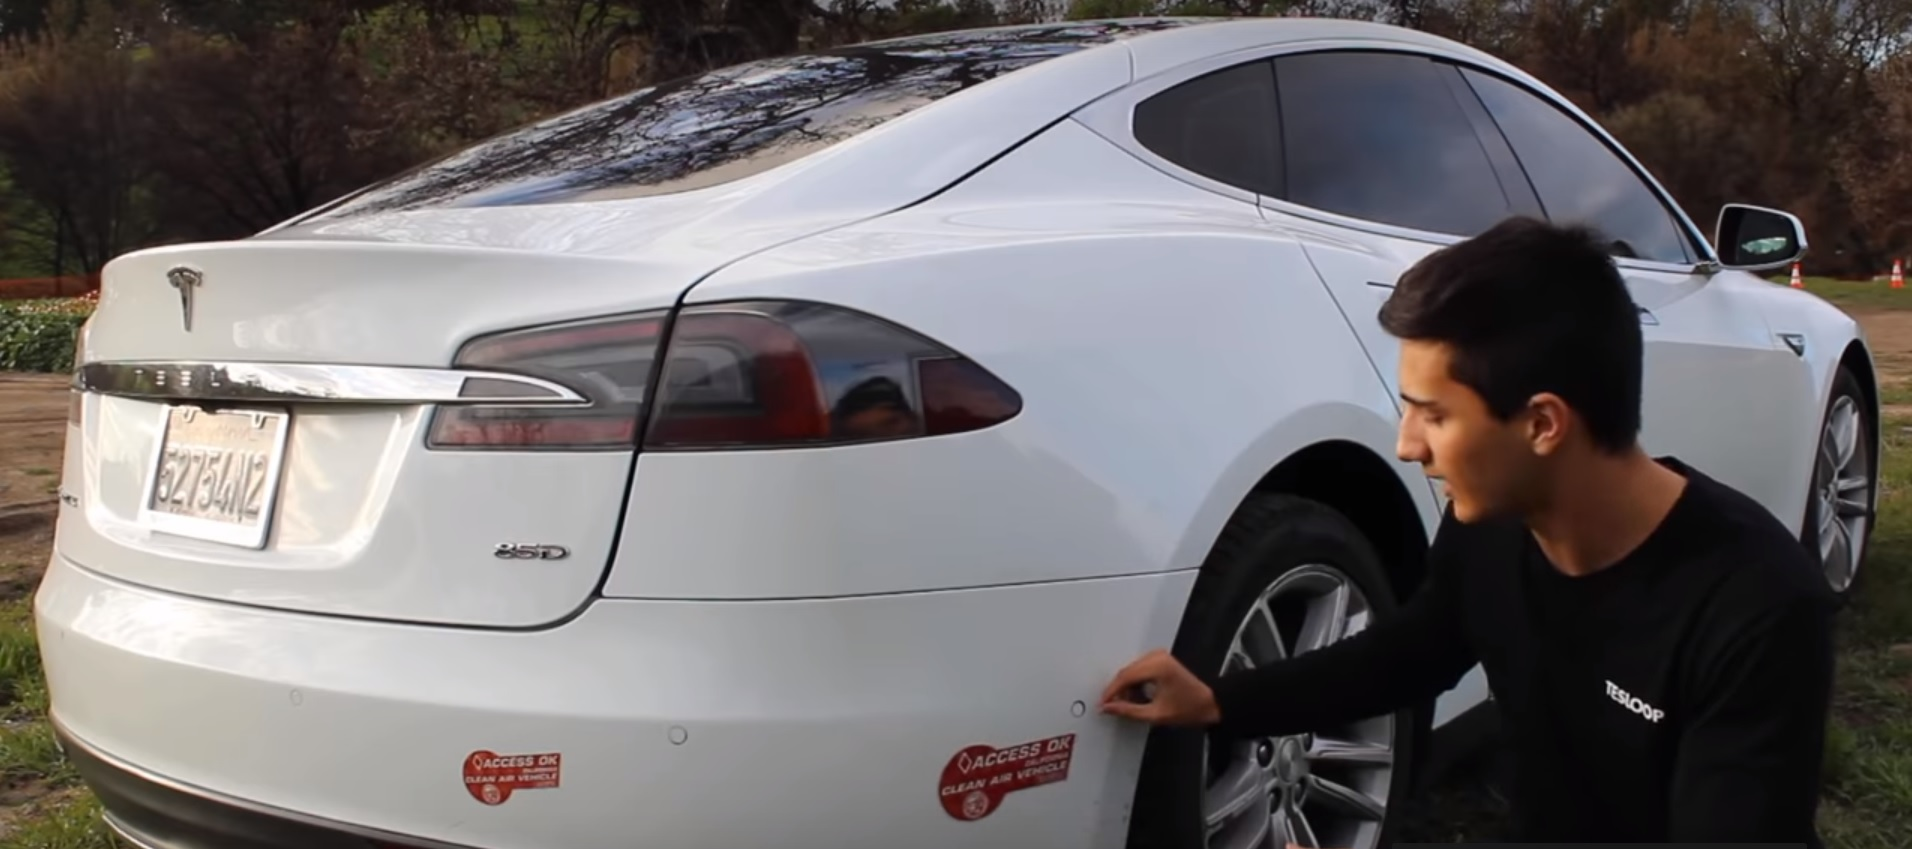 Tesla Model S quality, durability on display in 450K-mile car still going strong